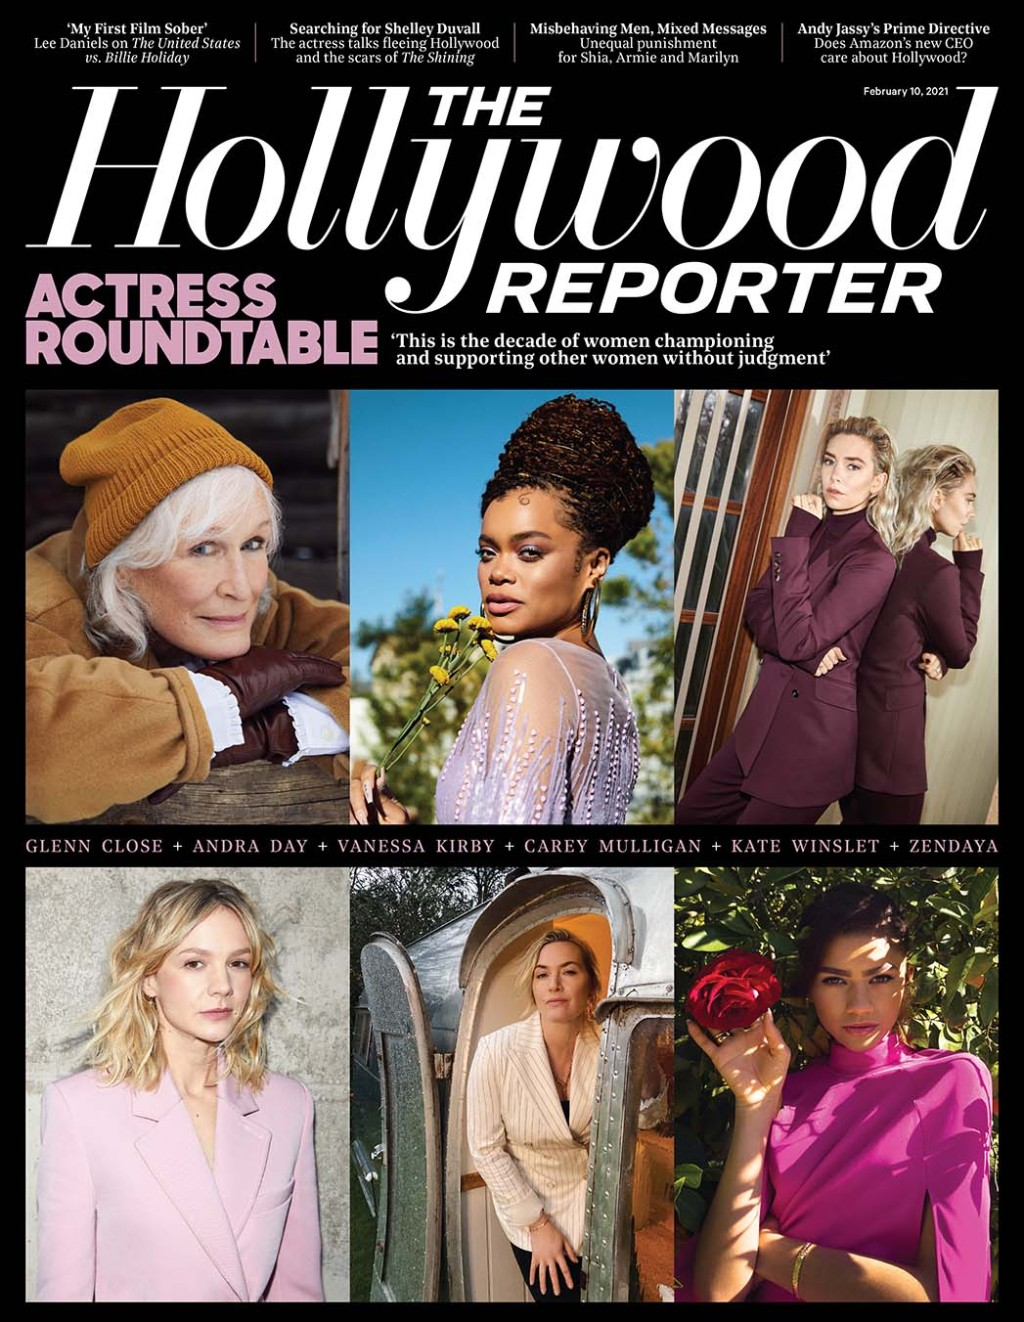 The Hollywood Reporter Issue 6 - Actress Roundtable